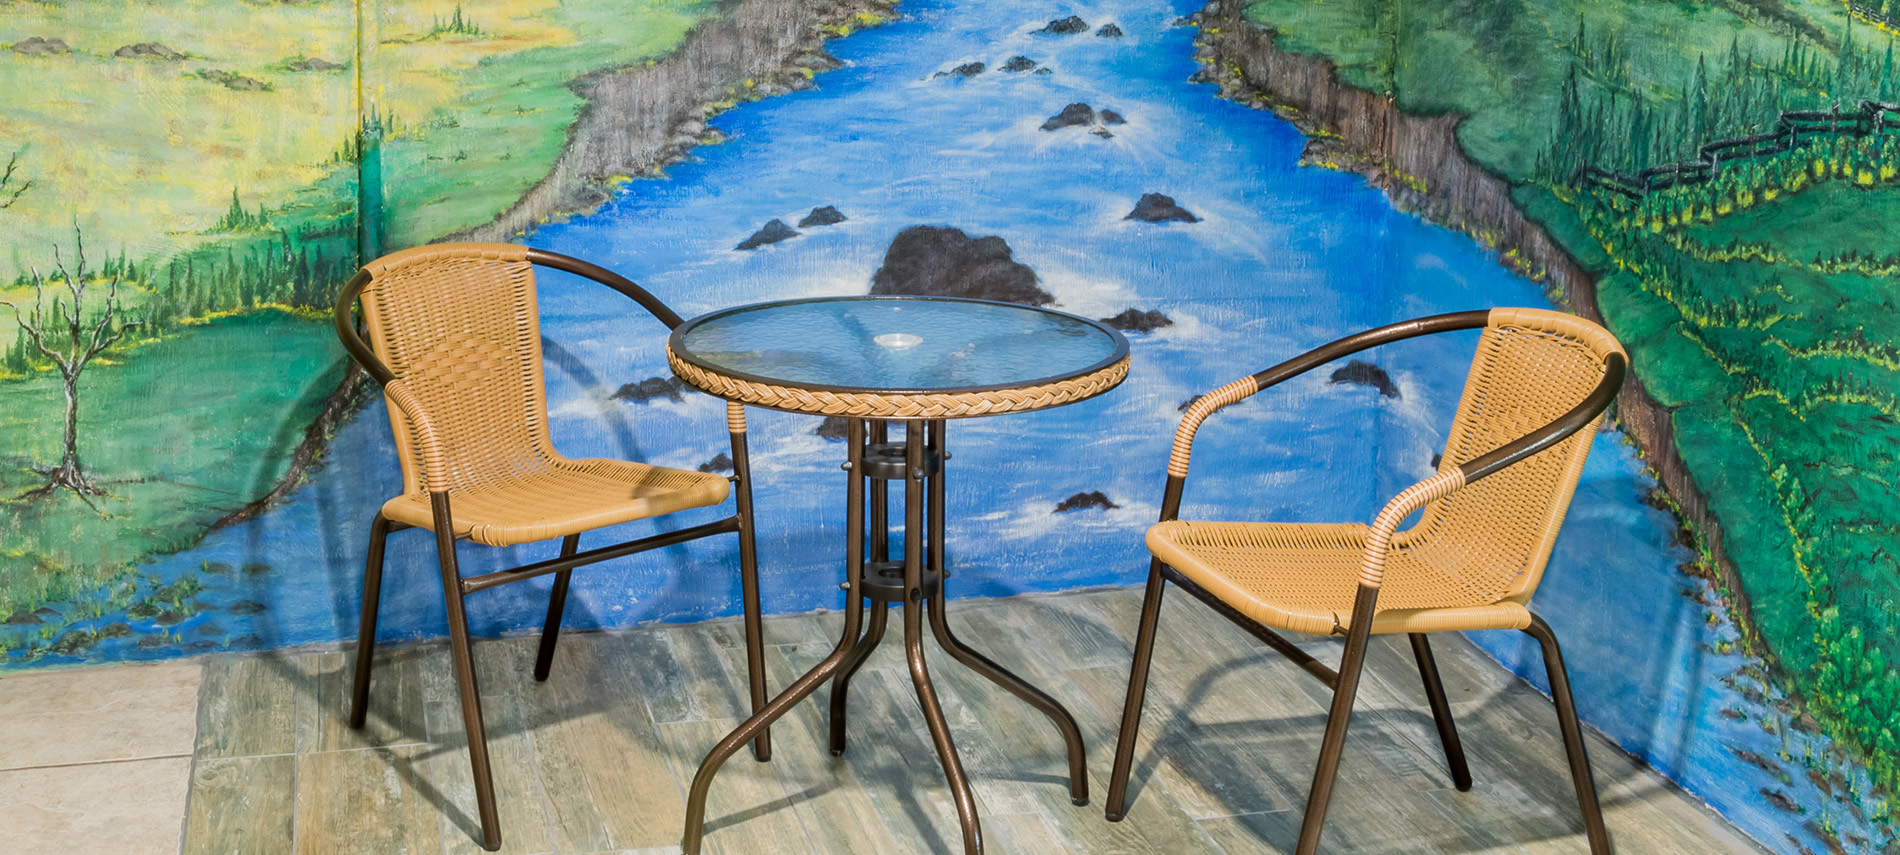 Painting of rocky stream with green grass on sitde, glass table with wicker chairs on wood deck.